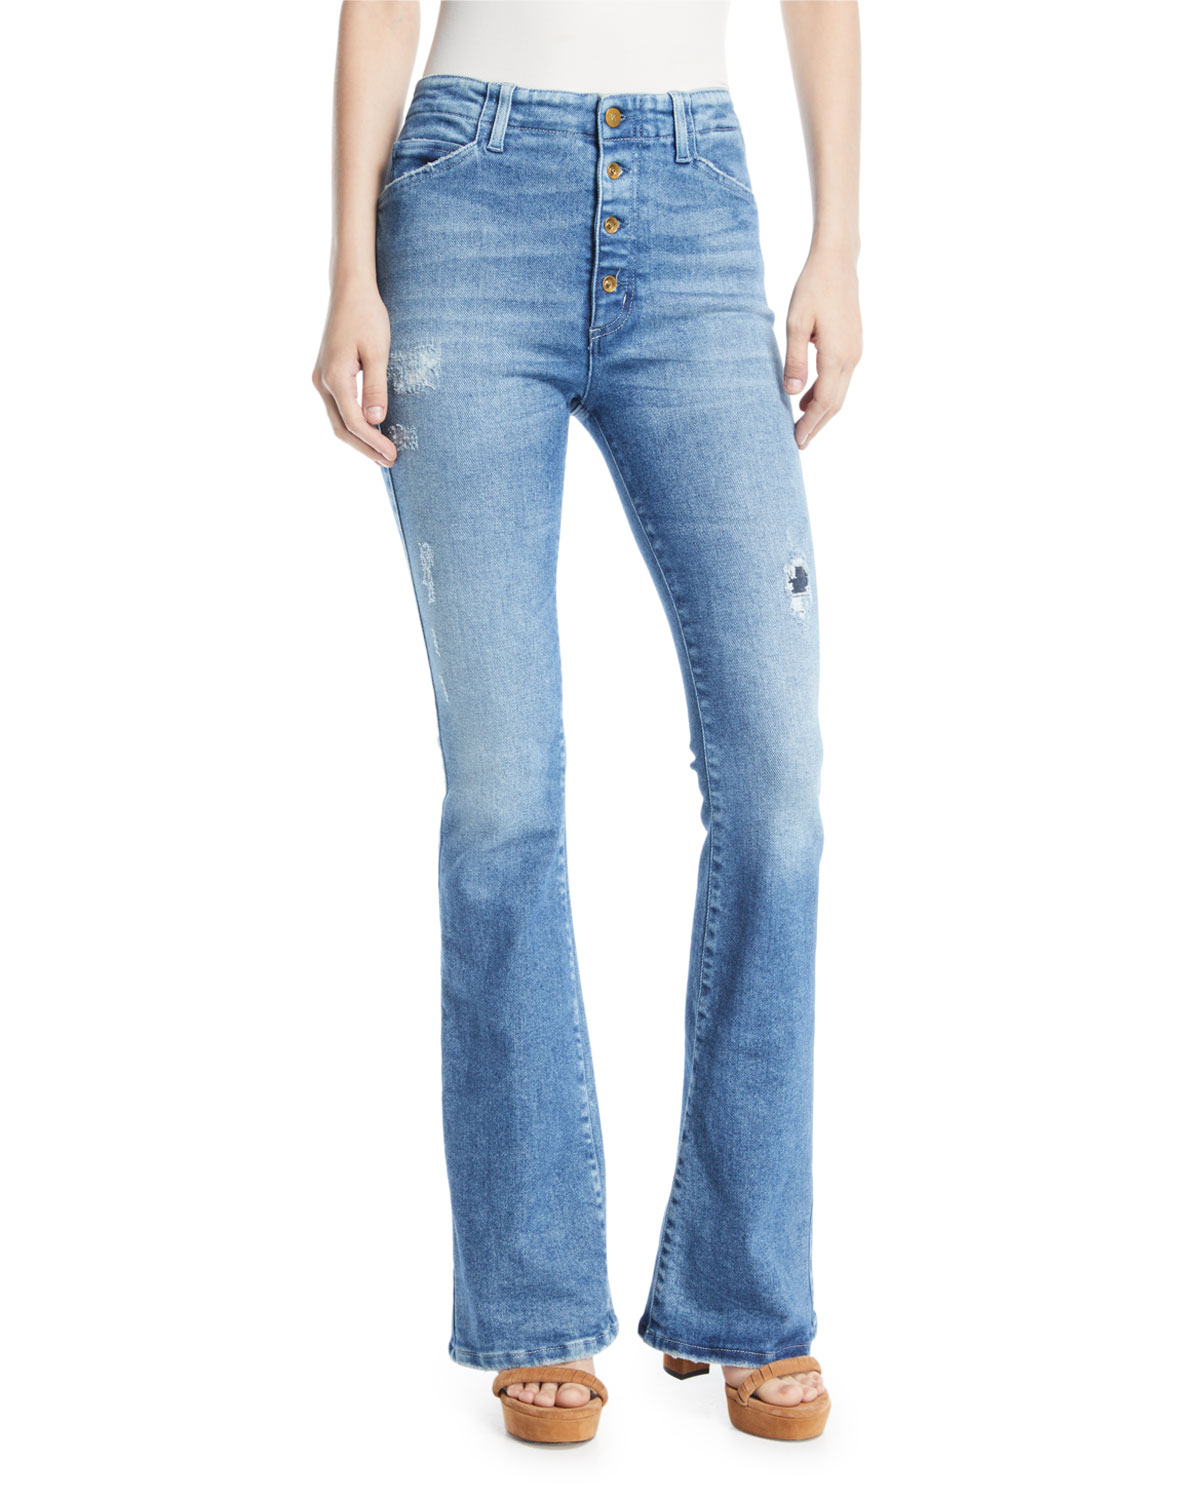 Friya Sharon Gene Mid-Rise Flare-Leg Jeans with Exposed Fly